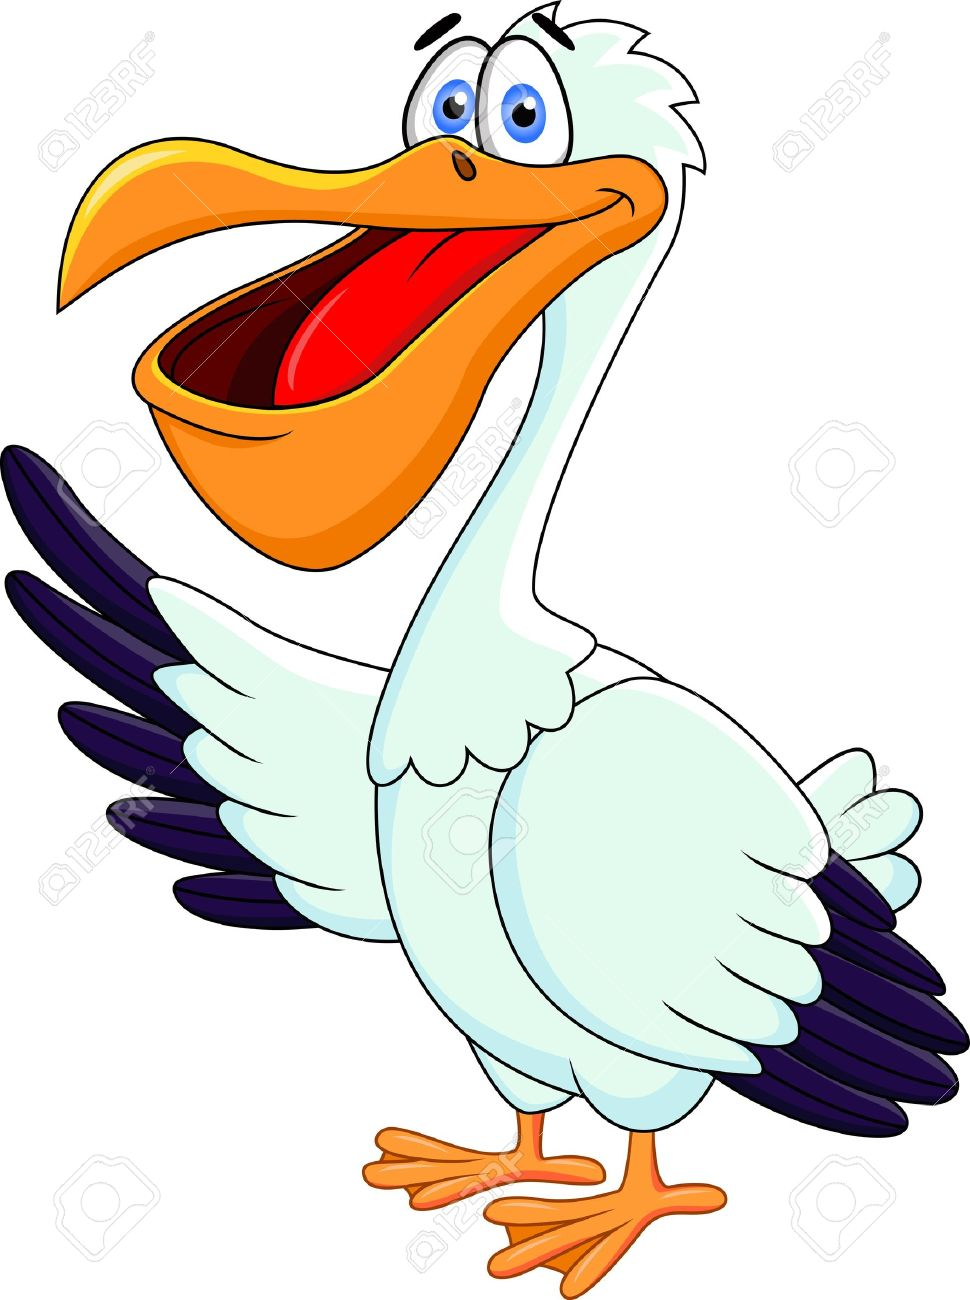 Free clipart pelican.